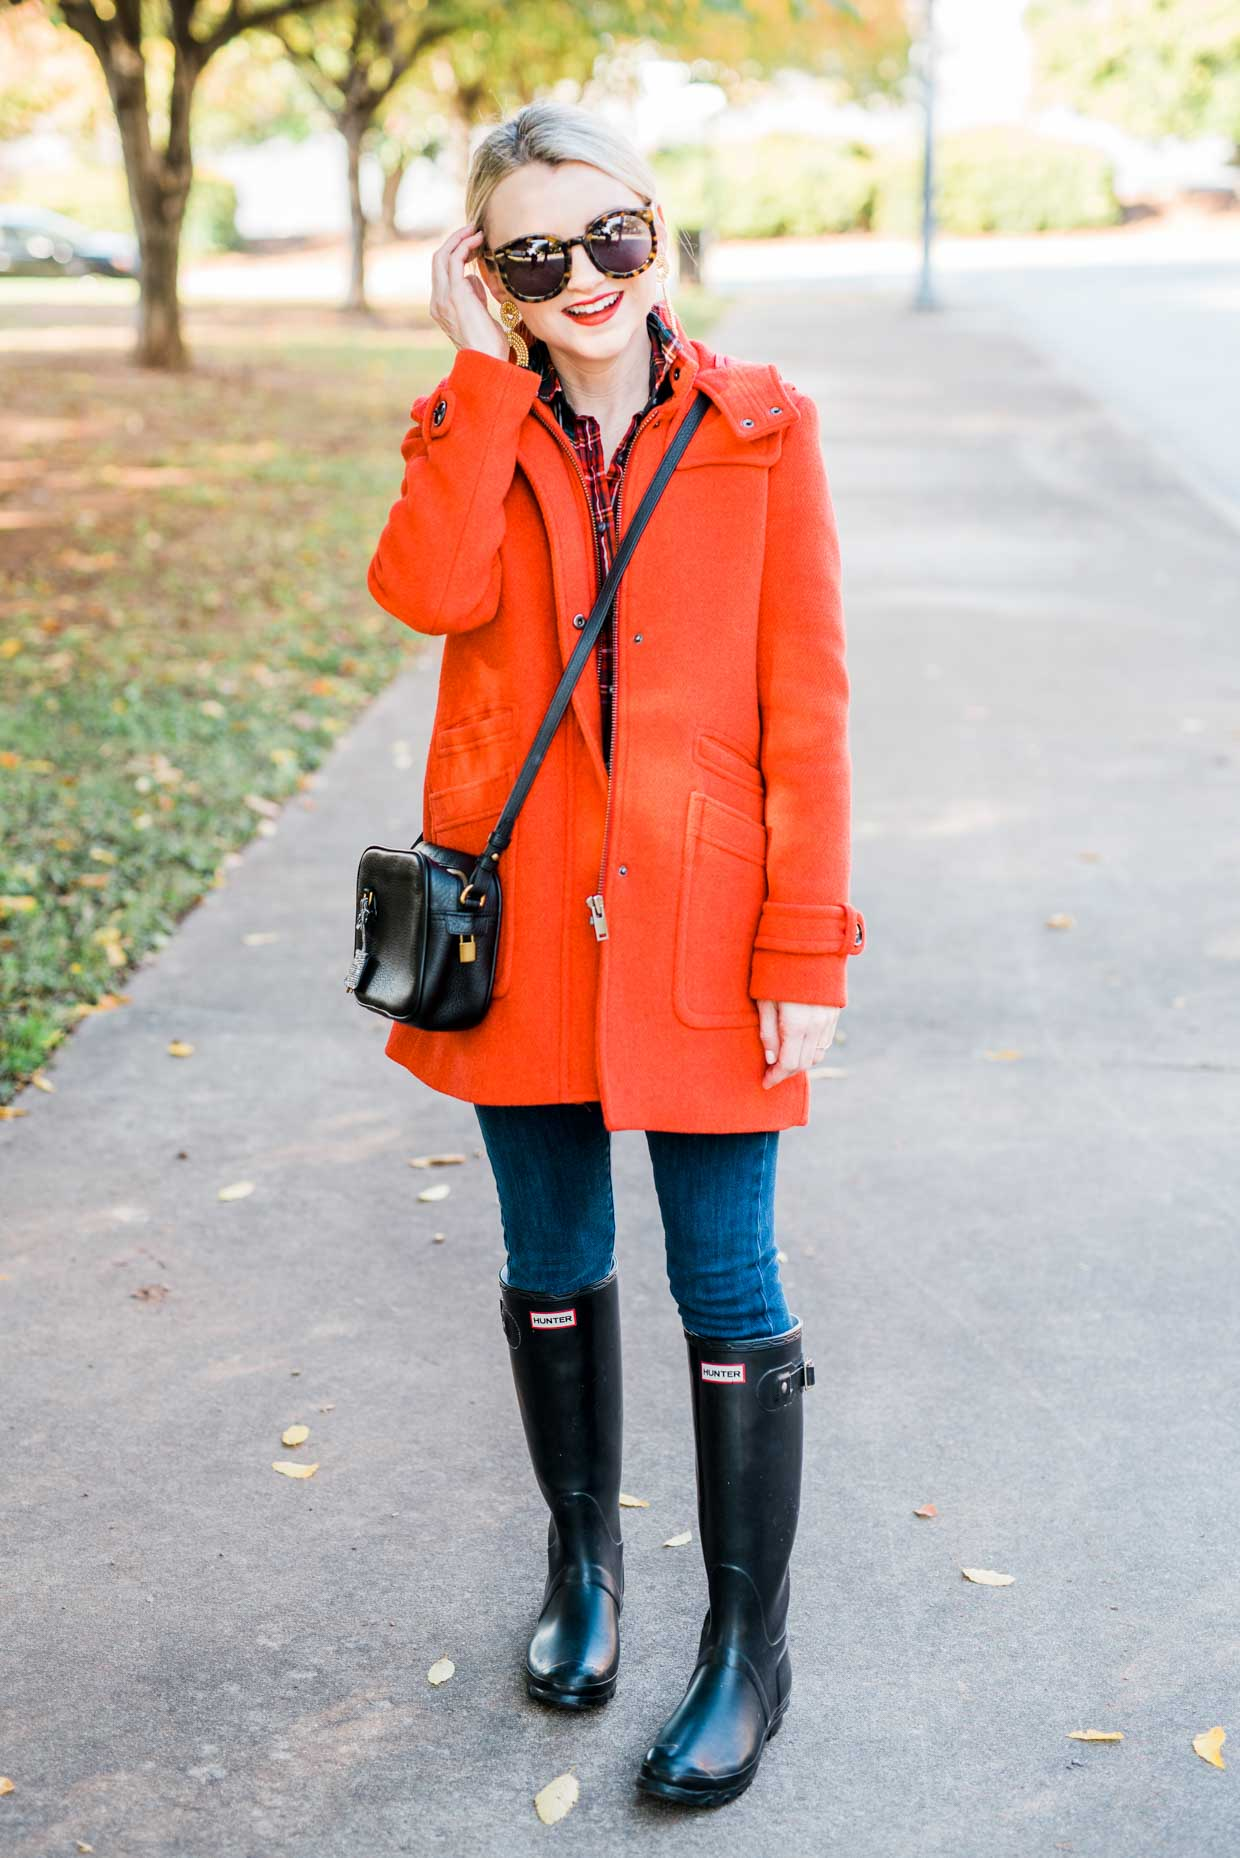 Hunter Boots Sizing Tips For Petites